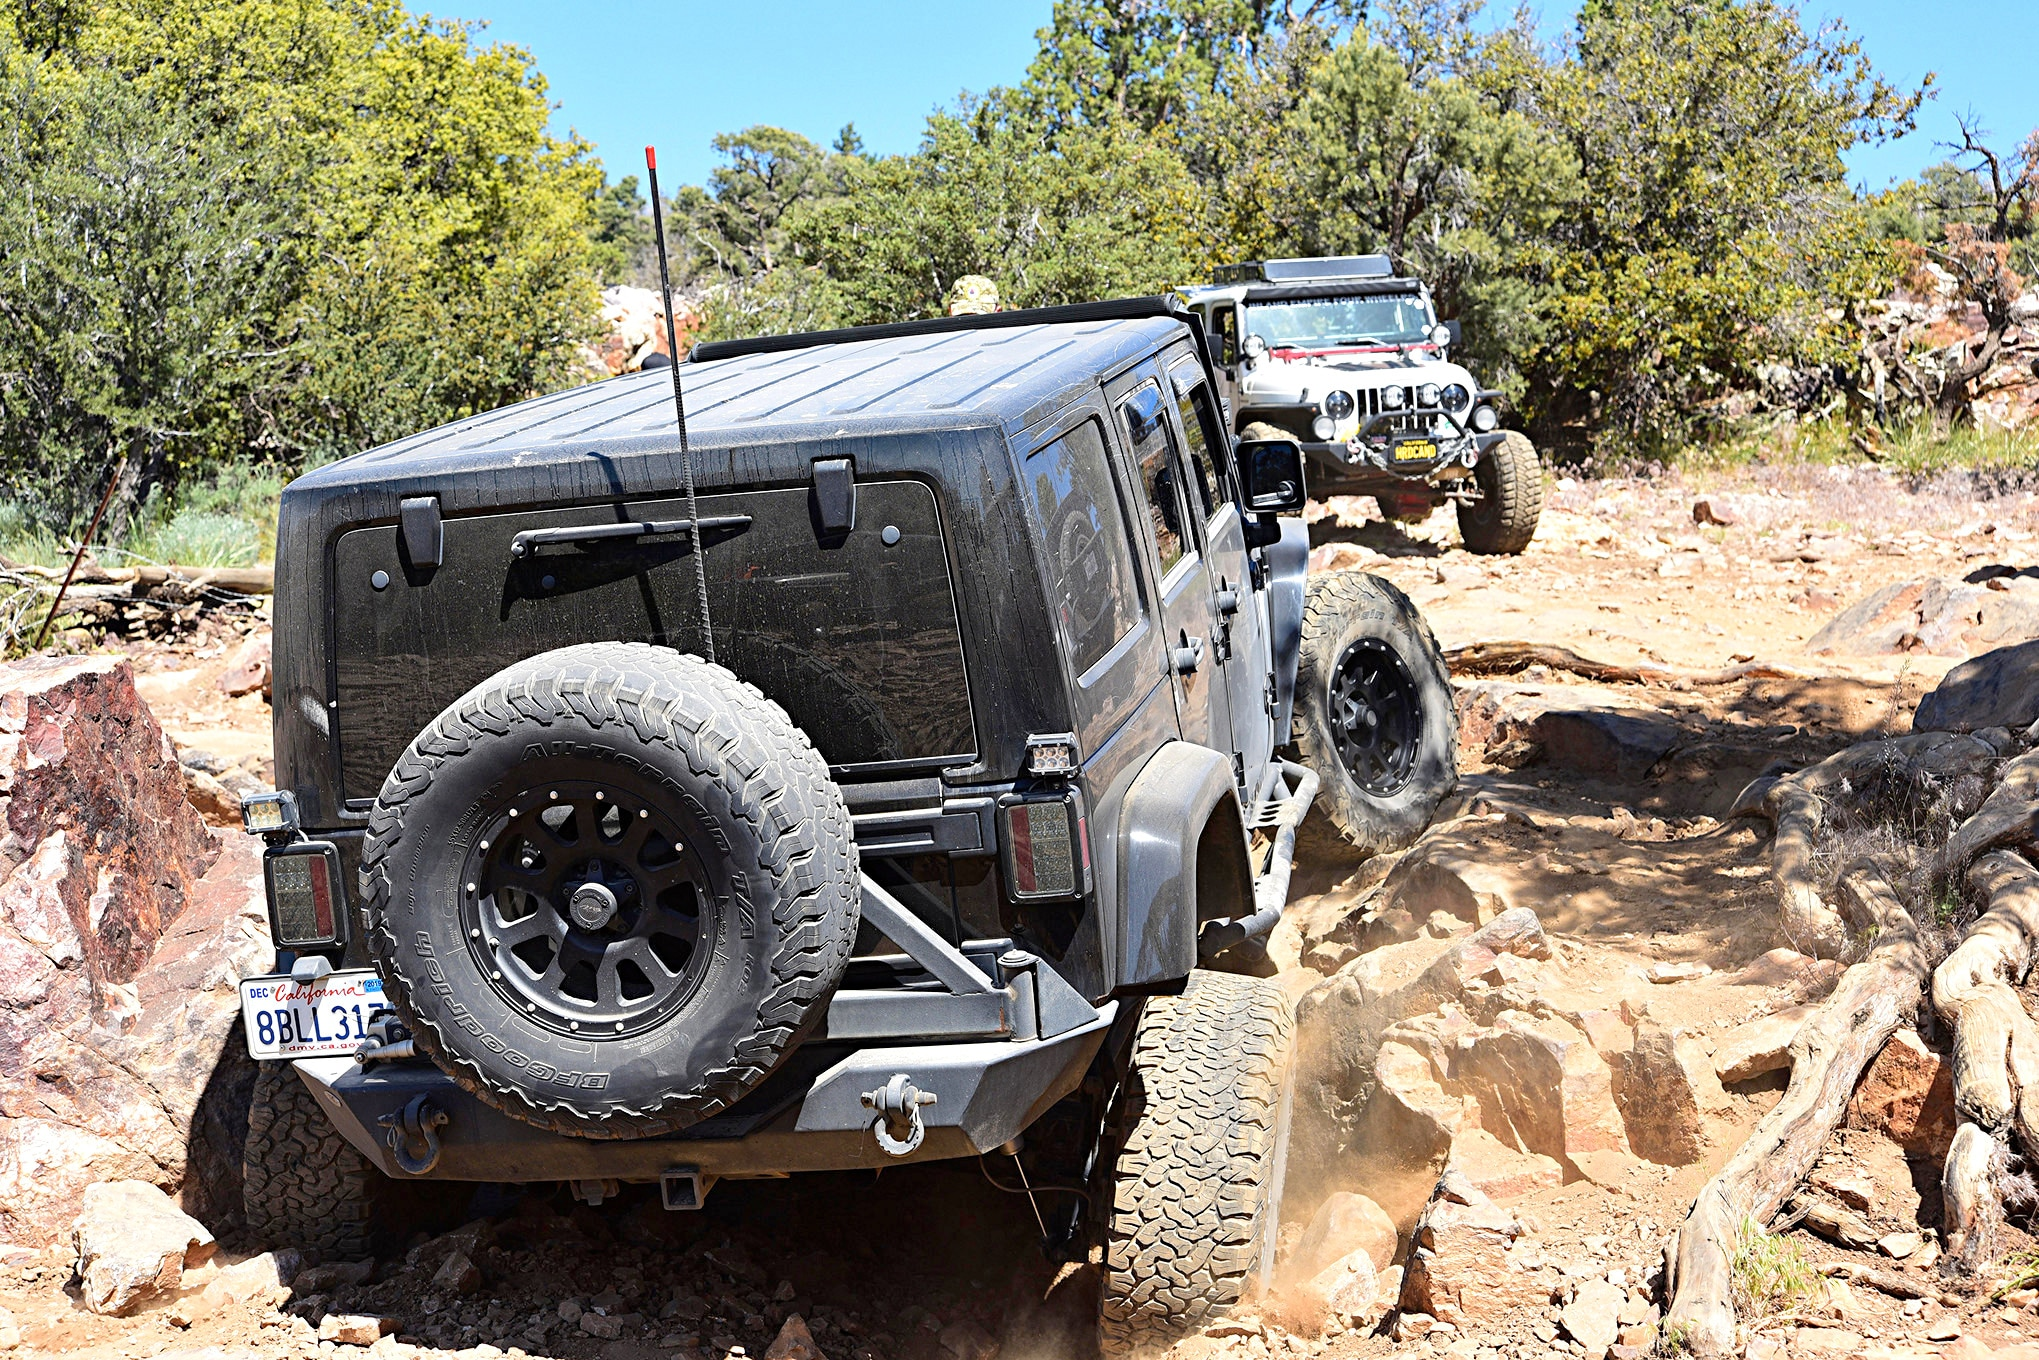 035 jeep event big bear forest fest 2019 inland empire